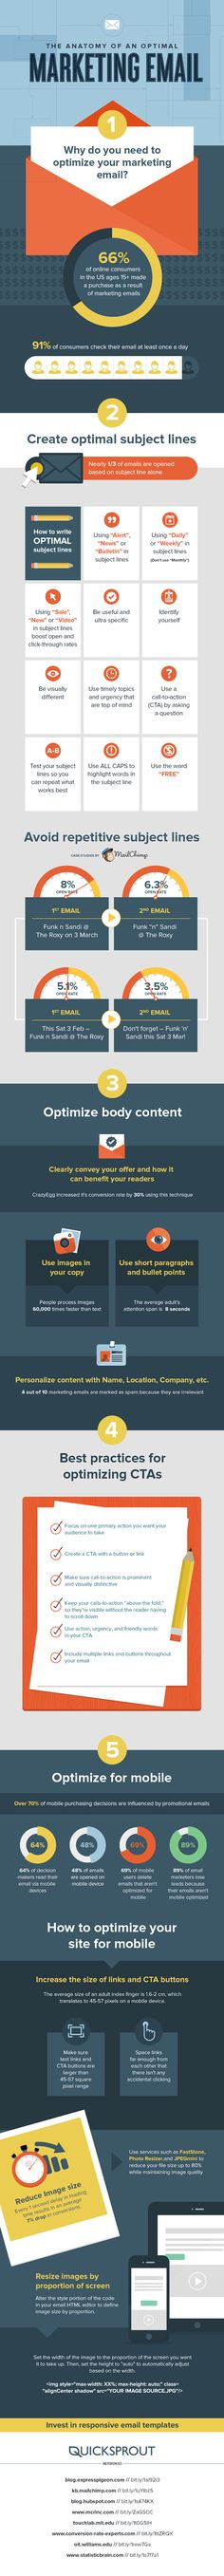 The Anatomy of an Optimal Marketing Email #infographic #Marketing #EmailMarketing